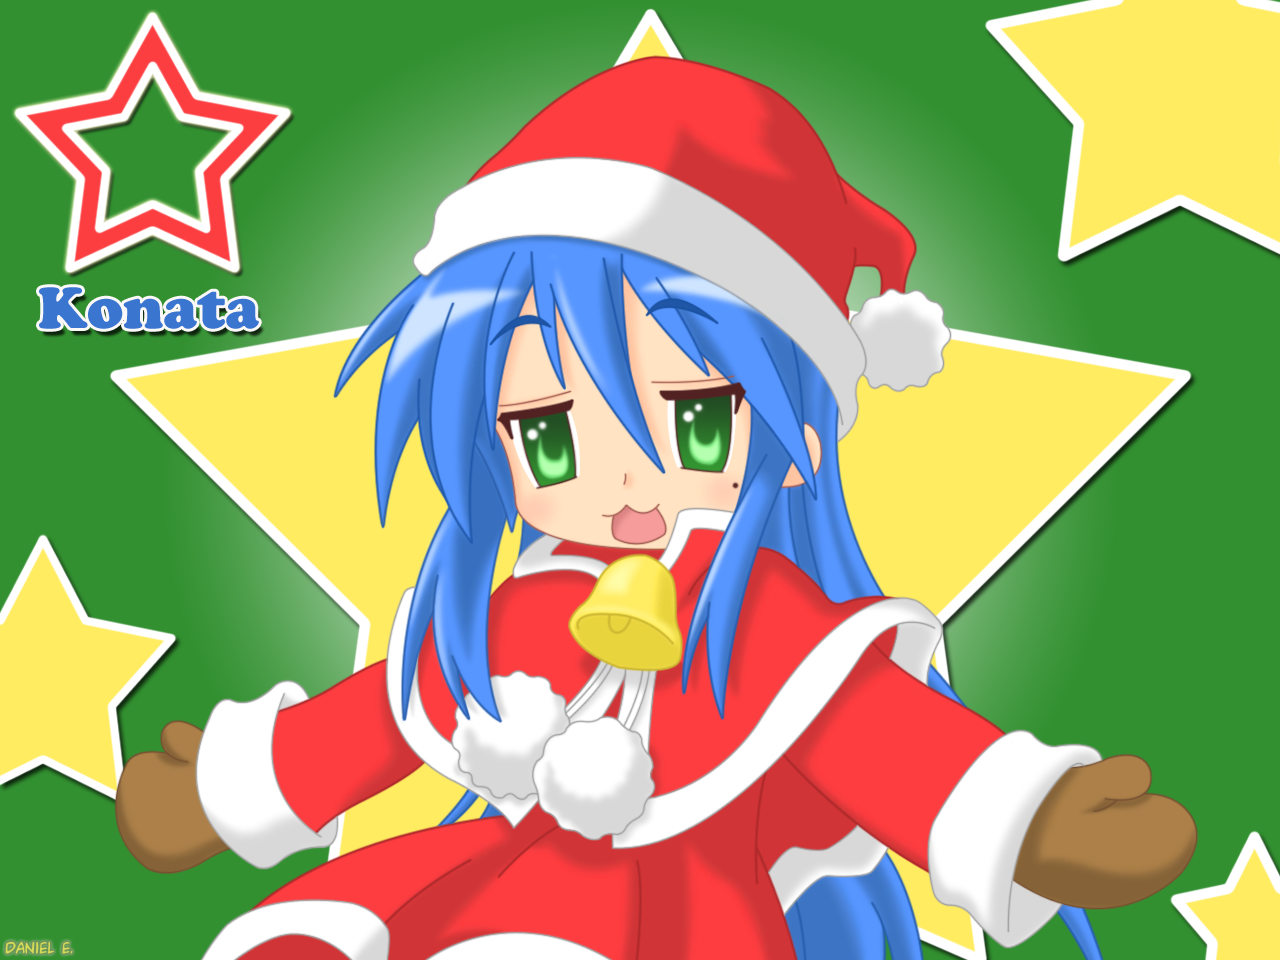 merry Christmas! - Anime Photo (27213863) - Fanpop